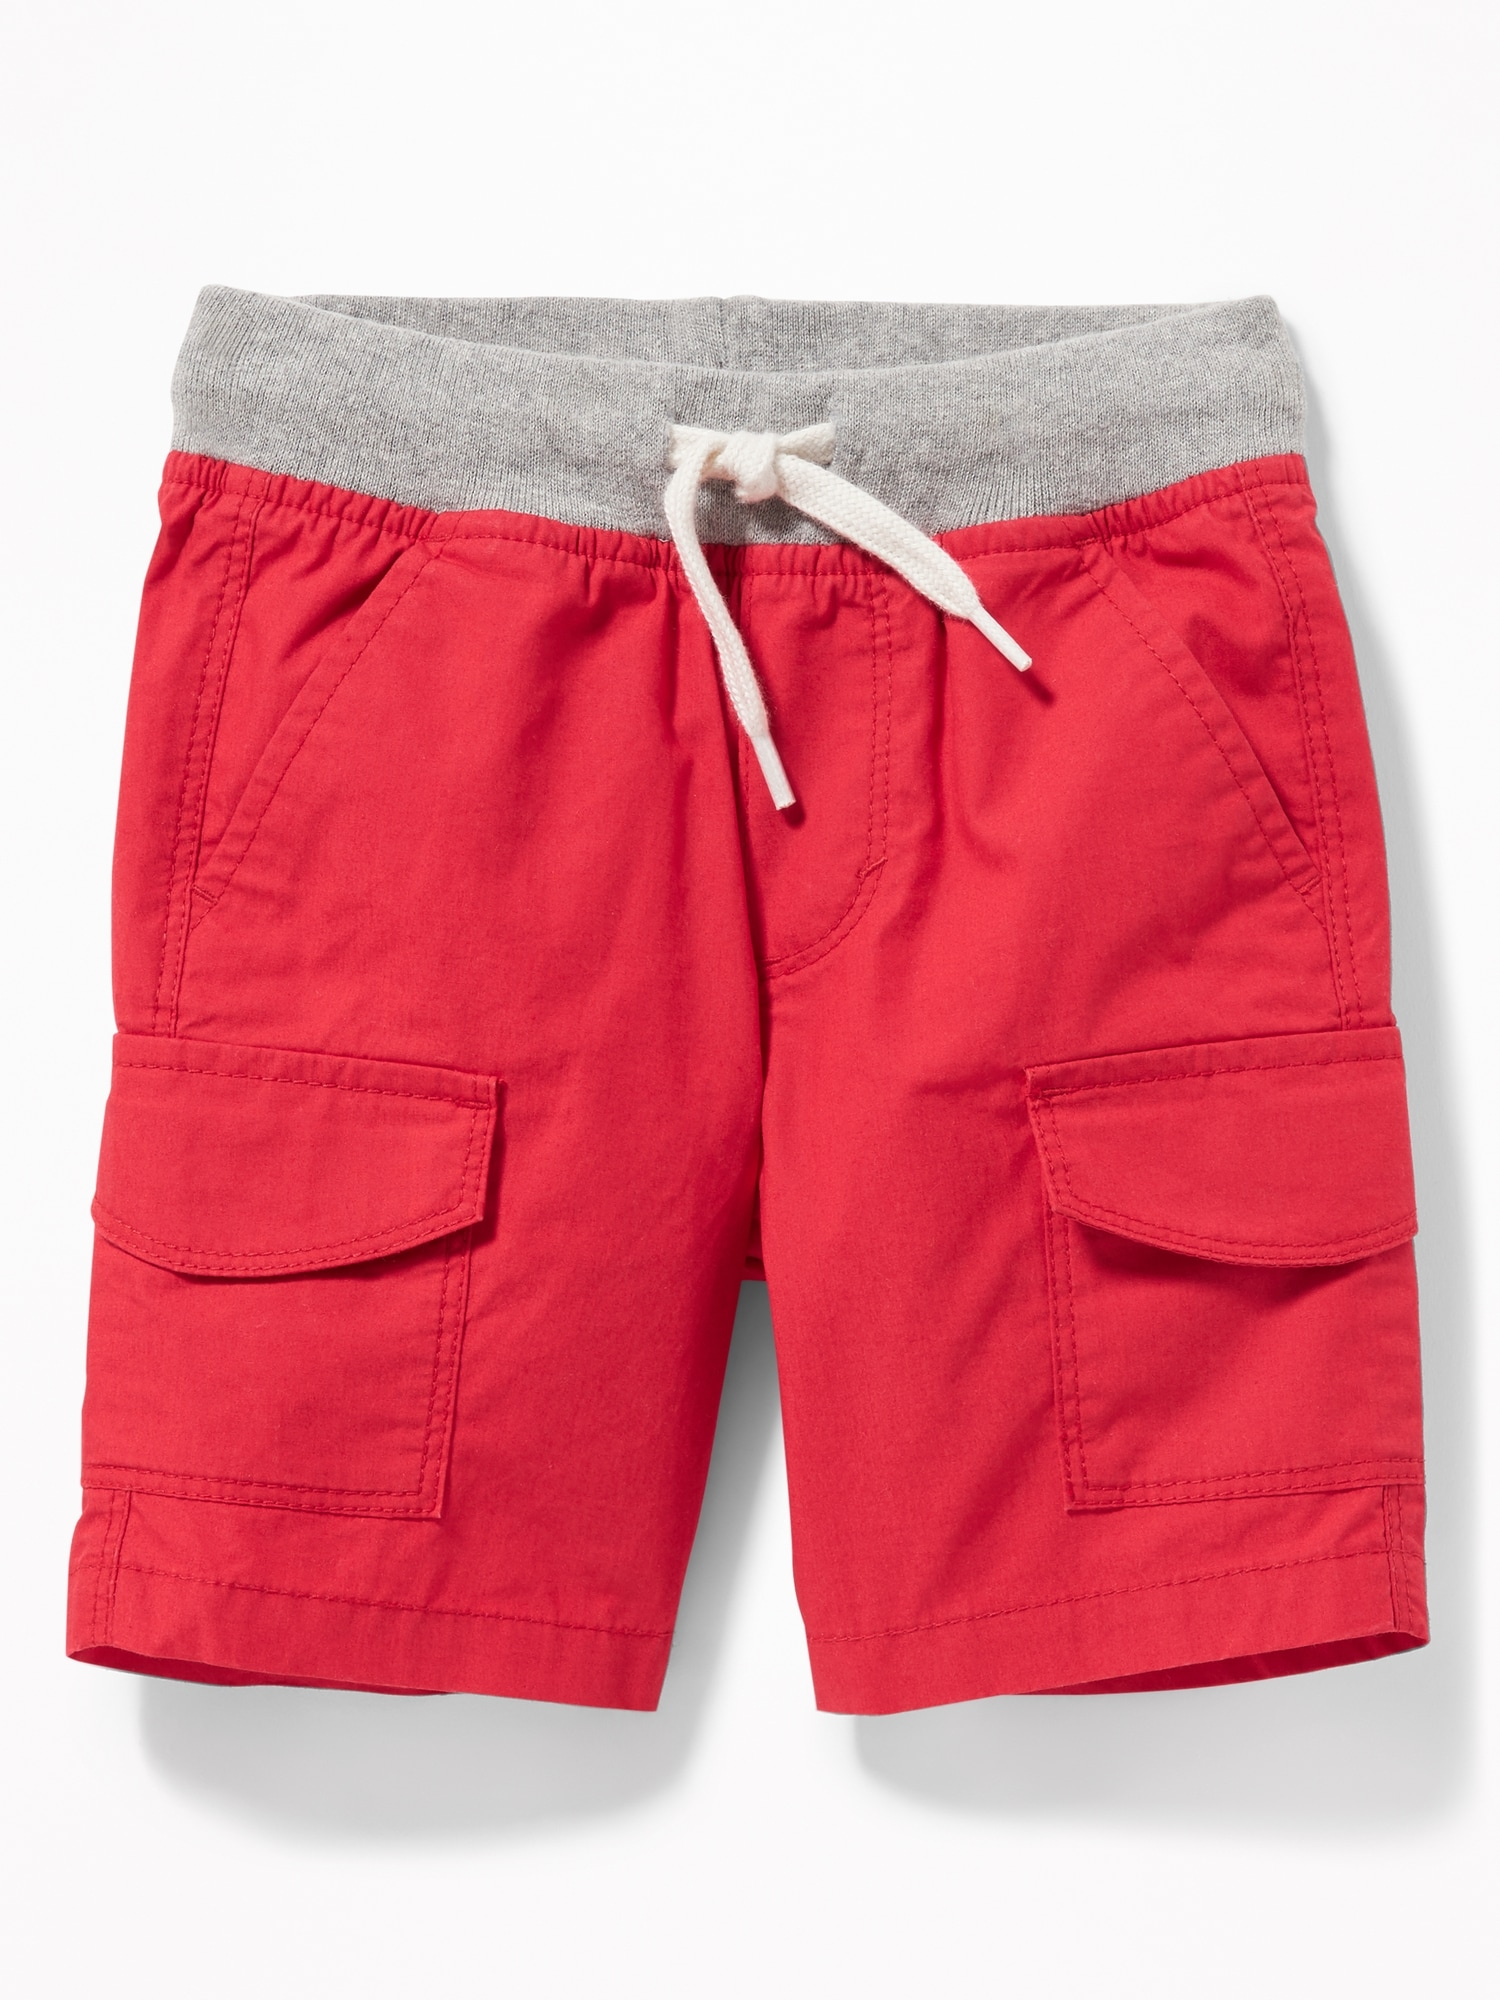 d536eb4d75 Functional Drawstring Rib-Knit Waist Cargo Shorts for Toddler Boys ...